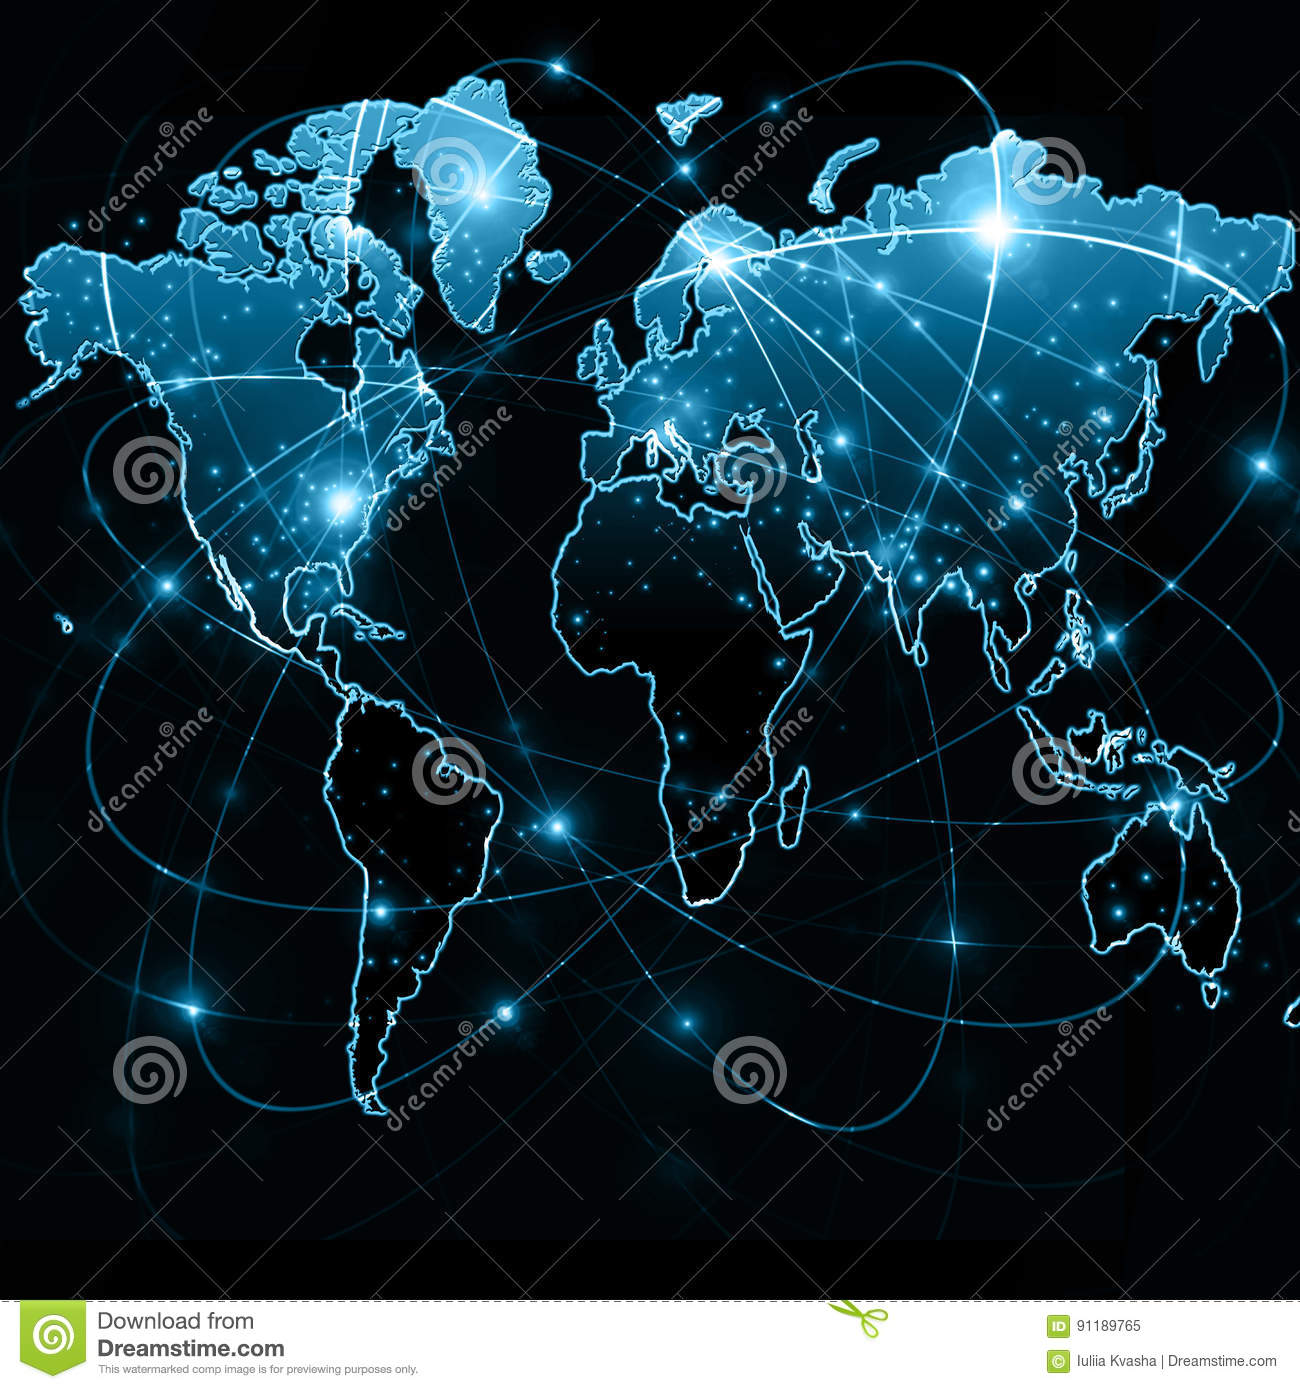 World map on a technological background glowing lines symbols of royalty free stock photo download world map gumiabroncs Image collections